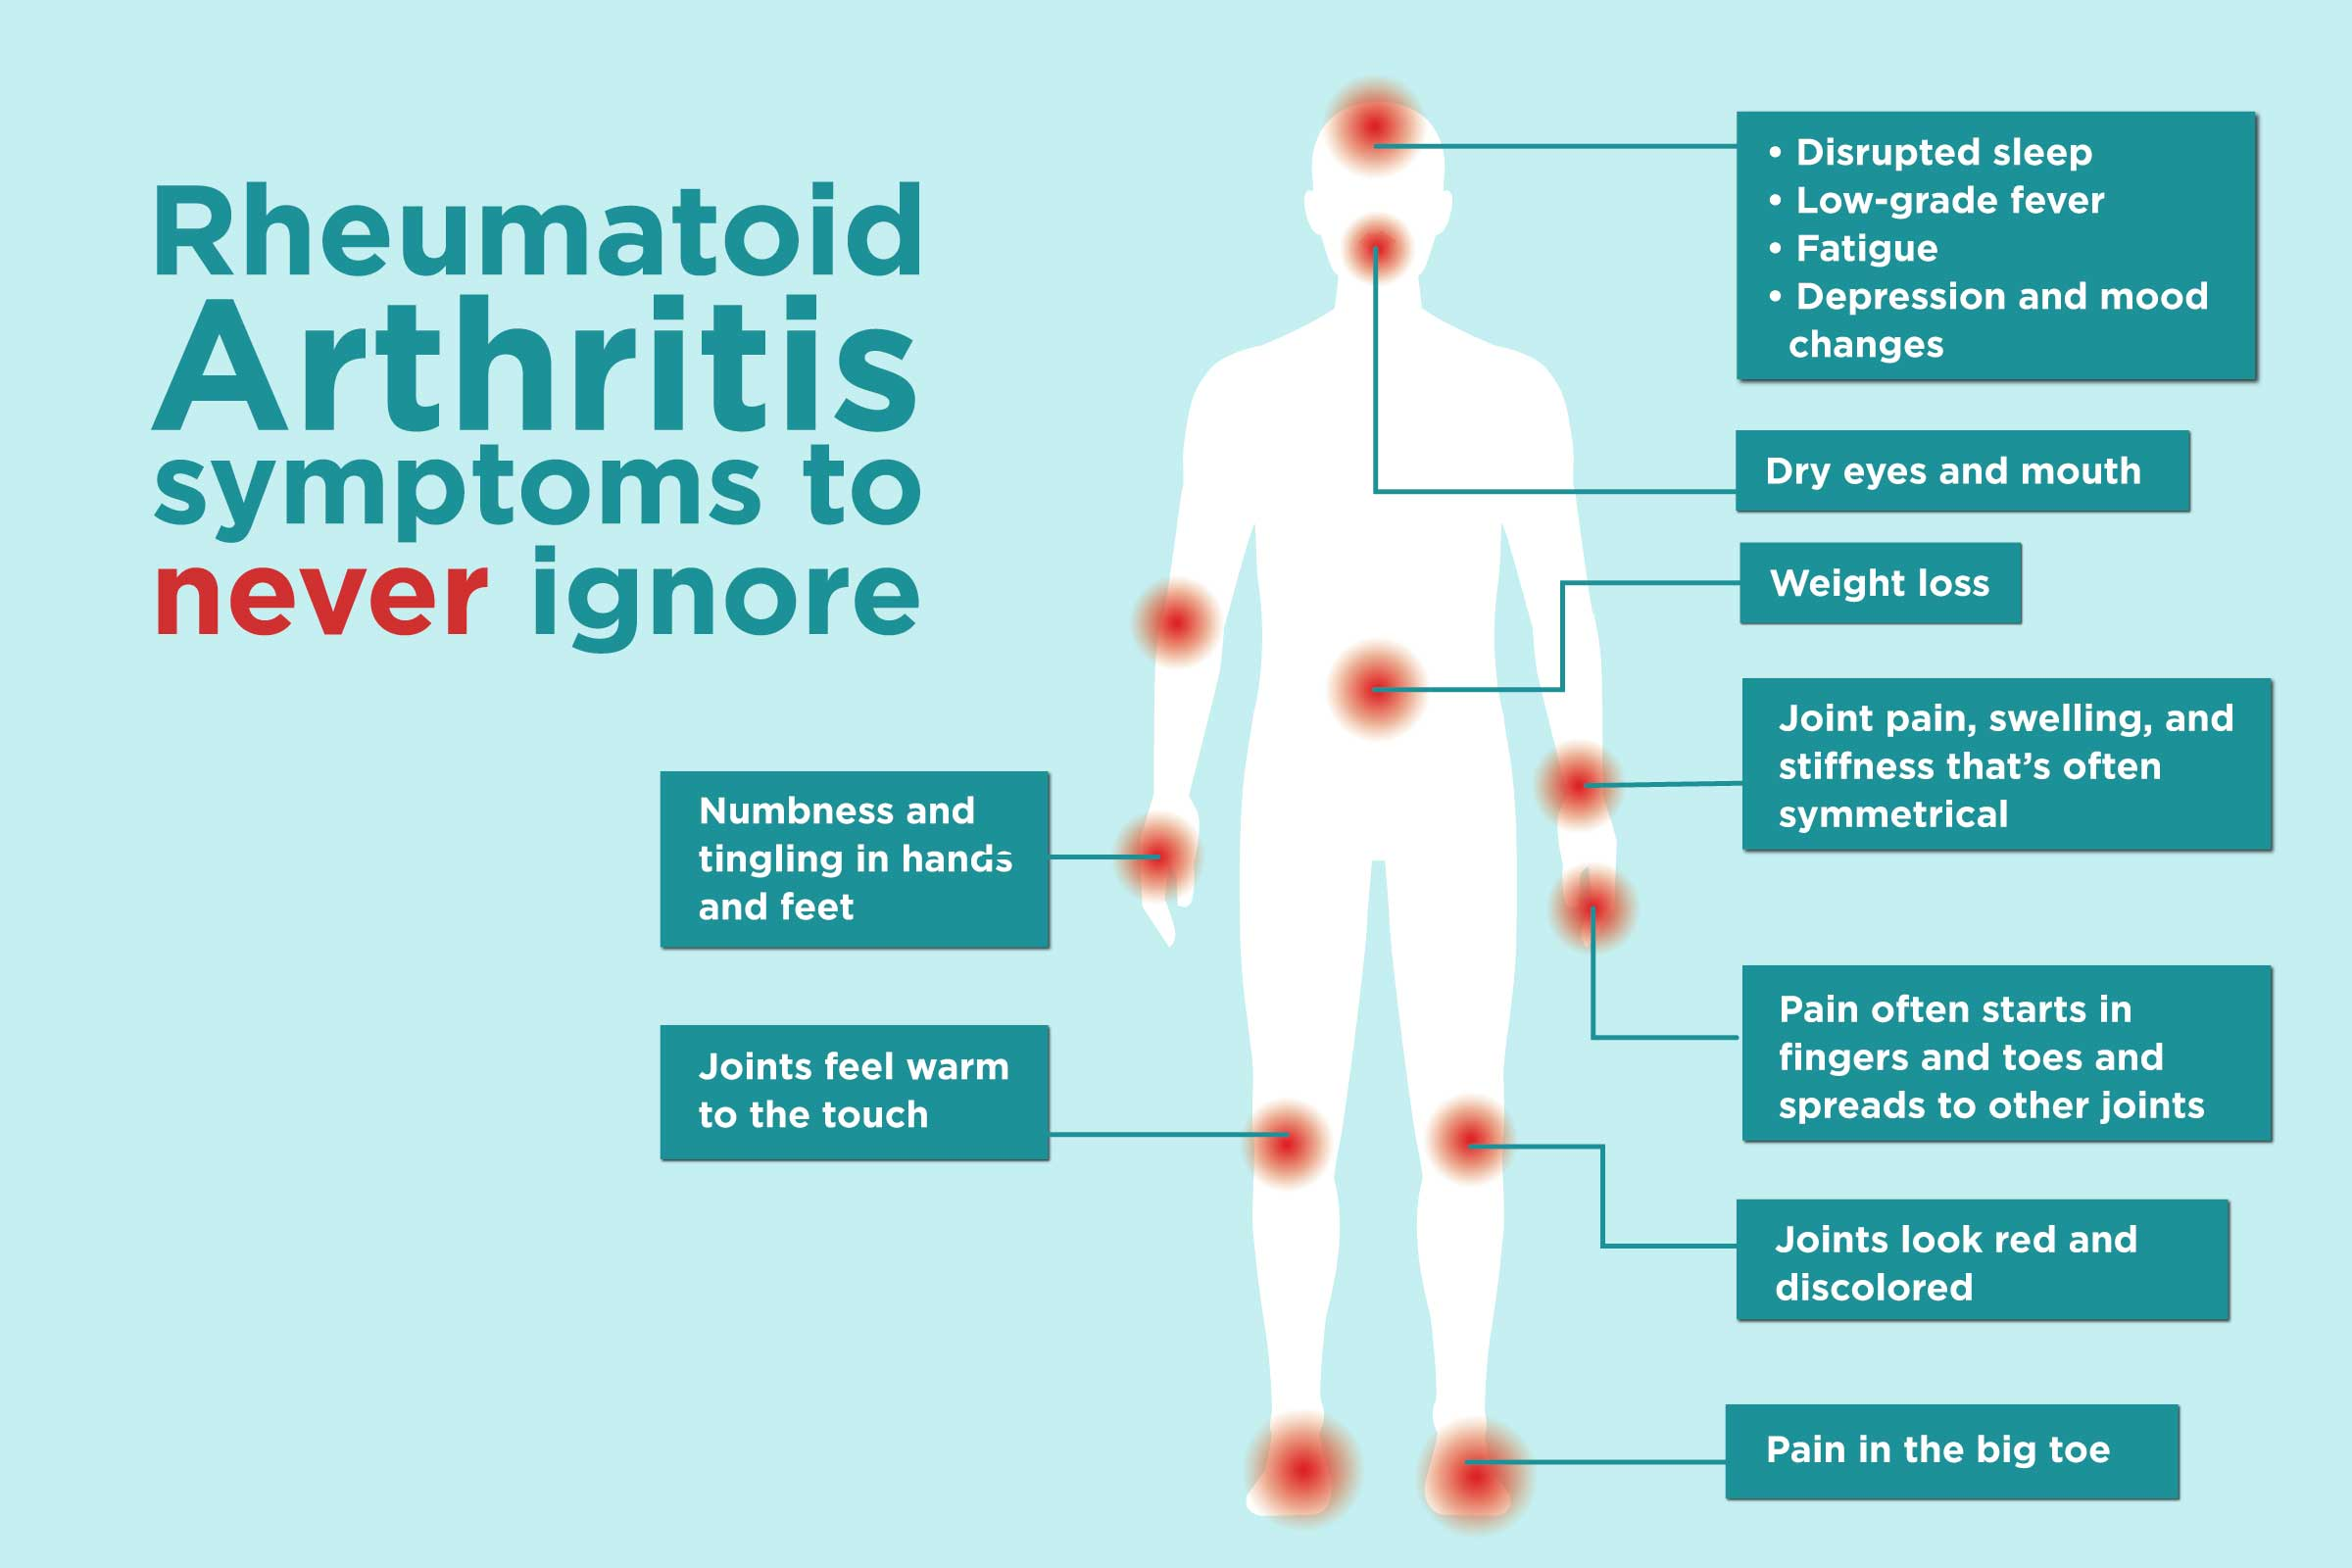 when does rheumatoid arthritis develop